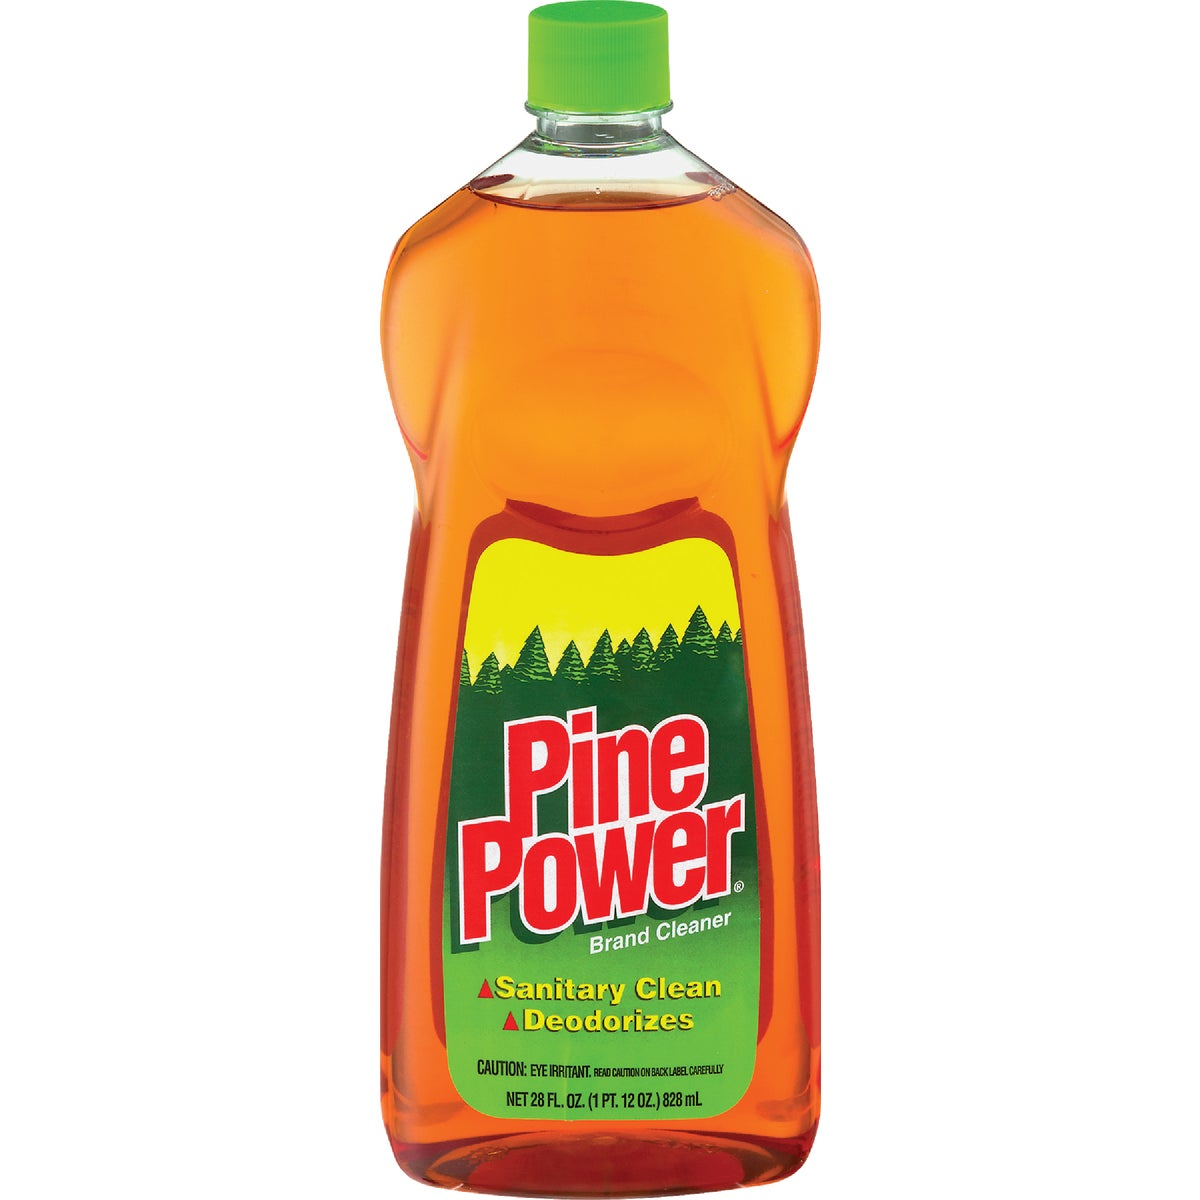 Pine Power Cleaner, Disinfectants, and Deodorizer, 121